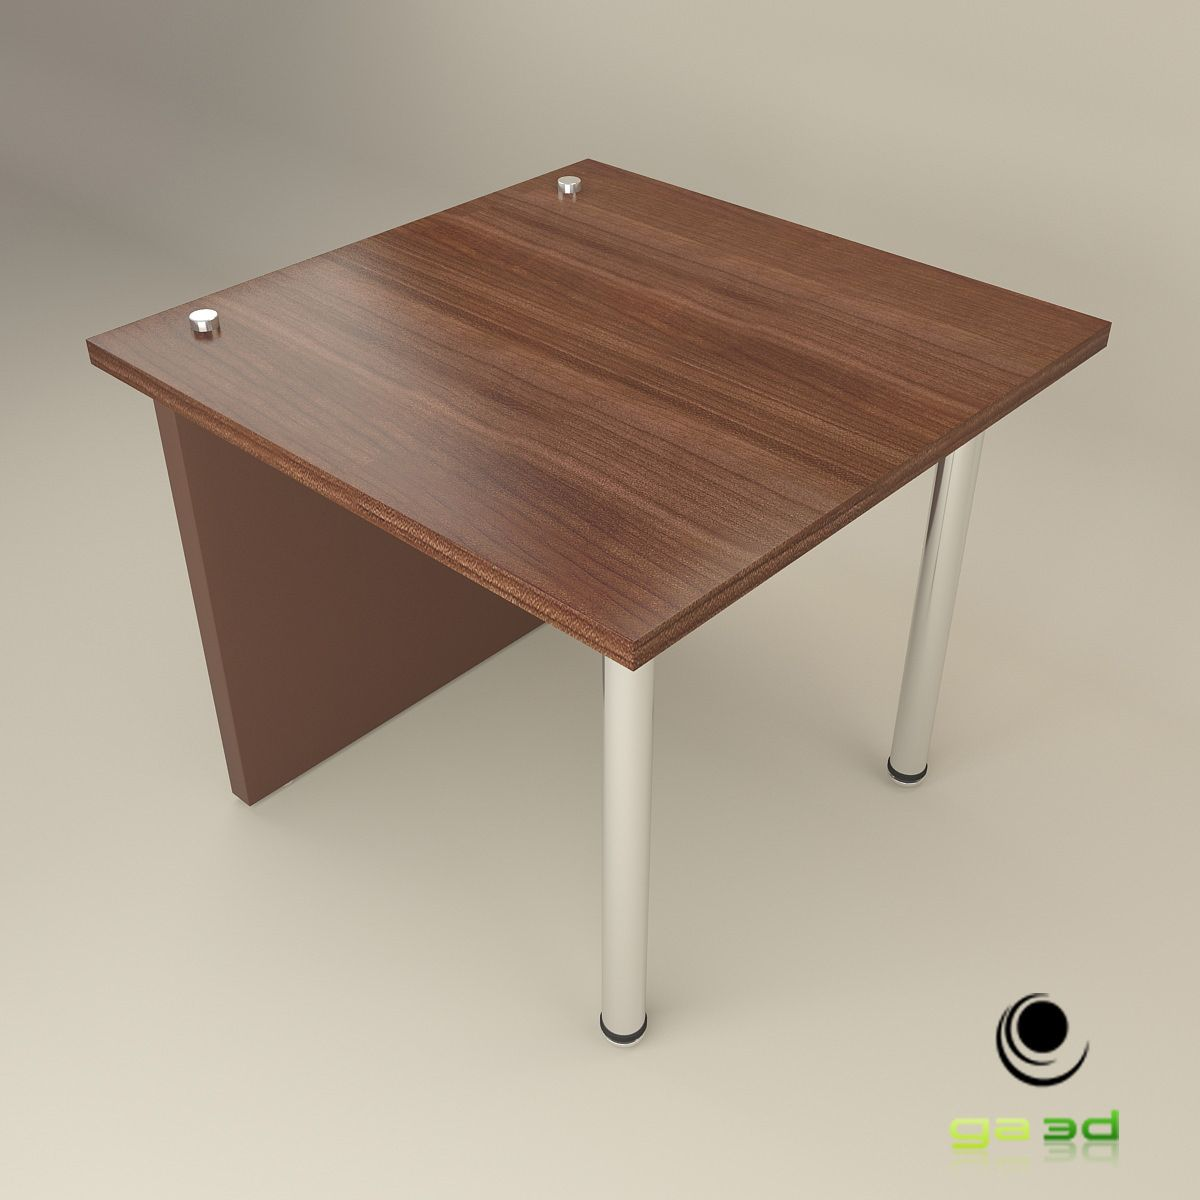 Office End Table By Ga3d You Can Buy This 3d Model For 9 On